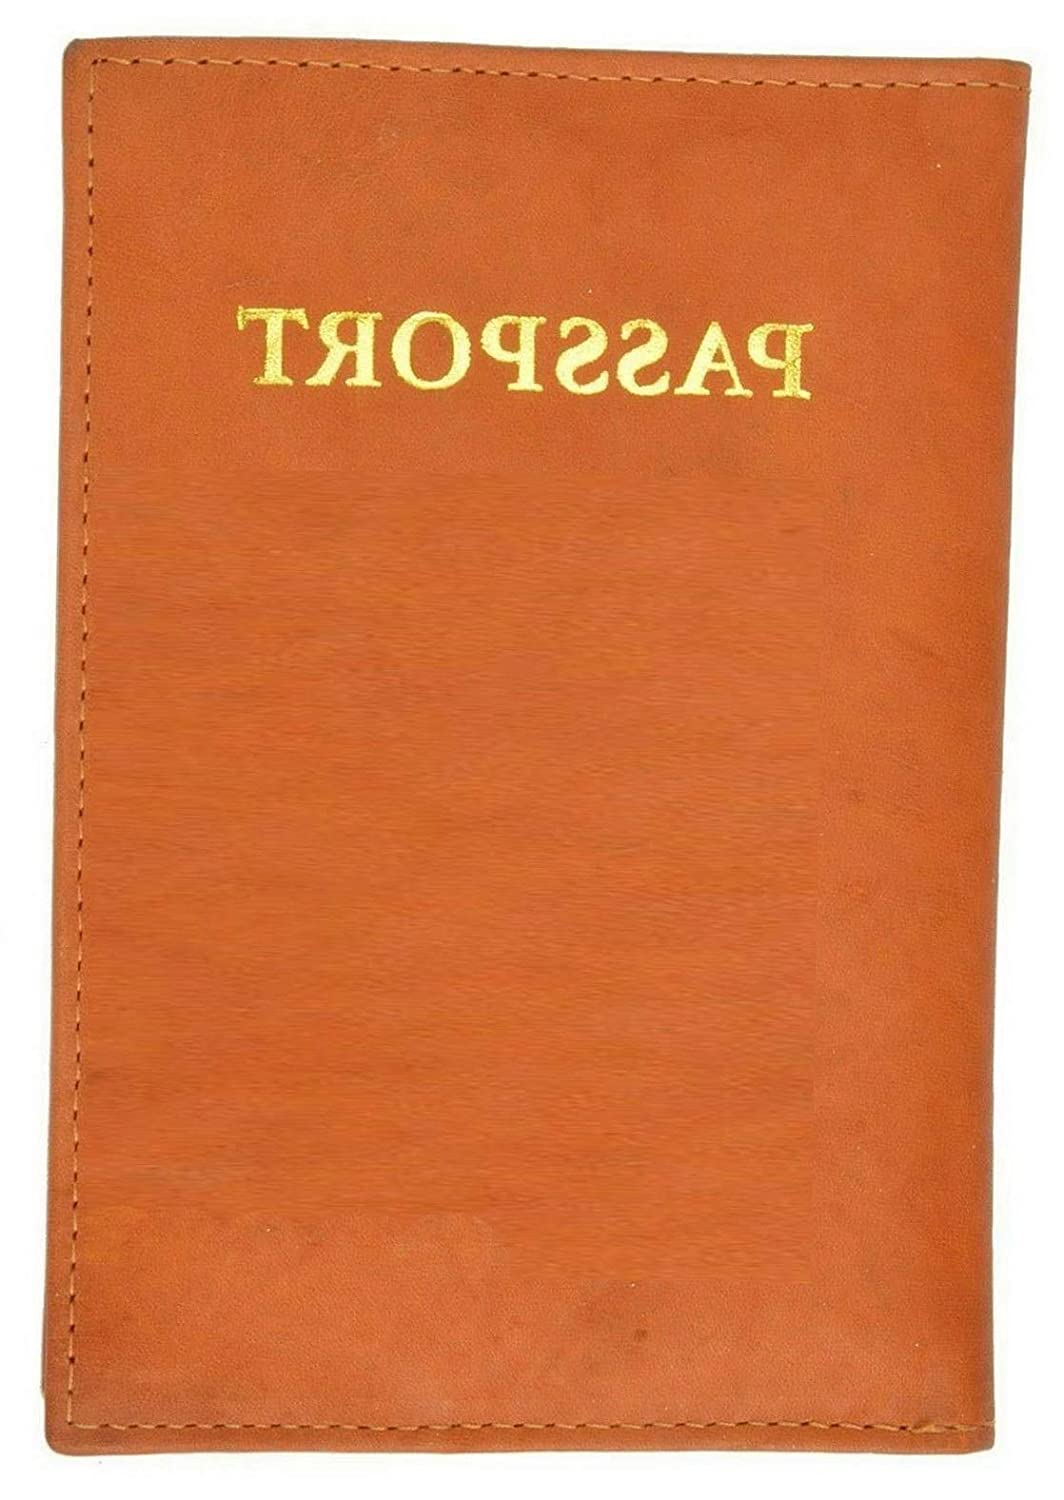 Model TRVLWLLT 1241 Mikash RFID Scan Blocking Leather Passport Cover Travel Document Holder Card Wallet